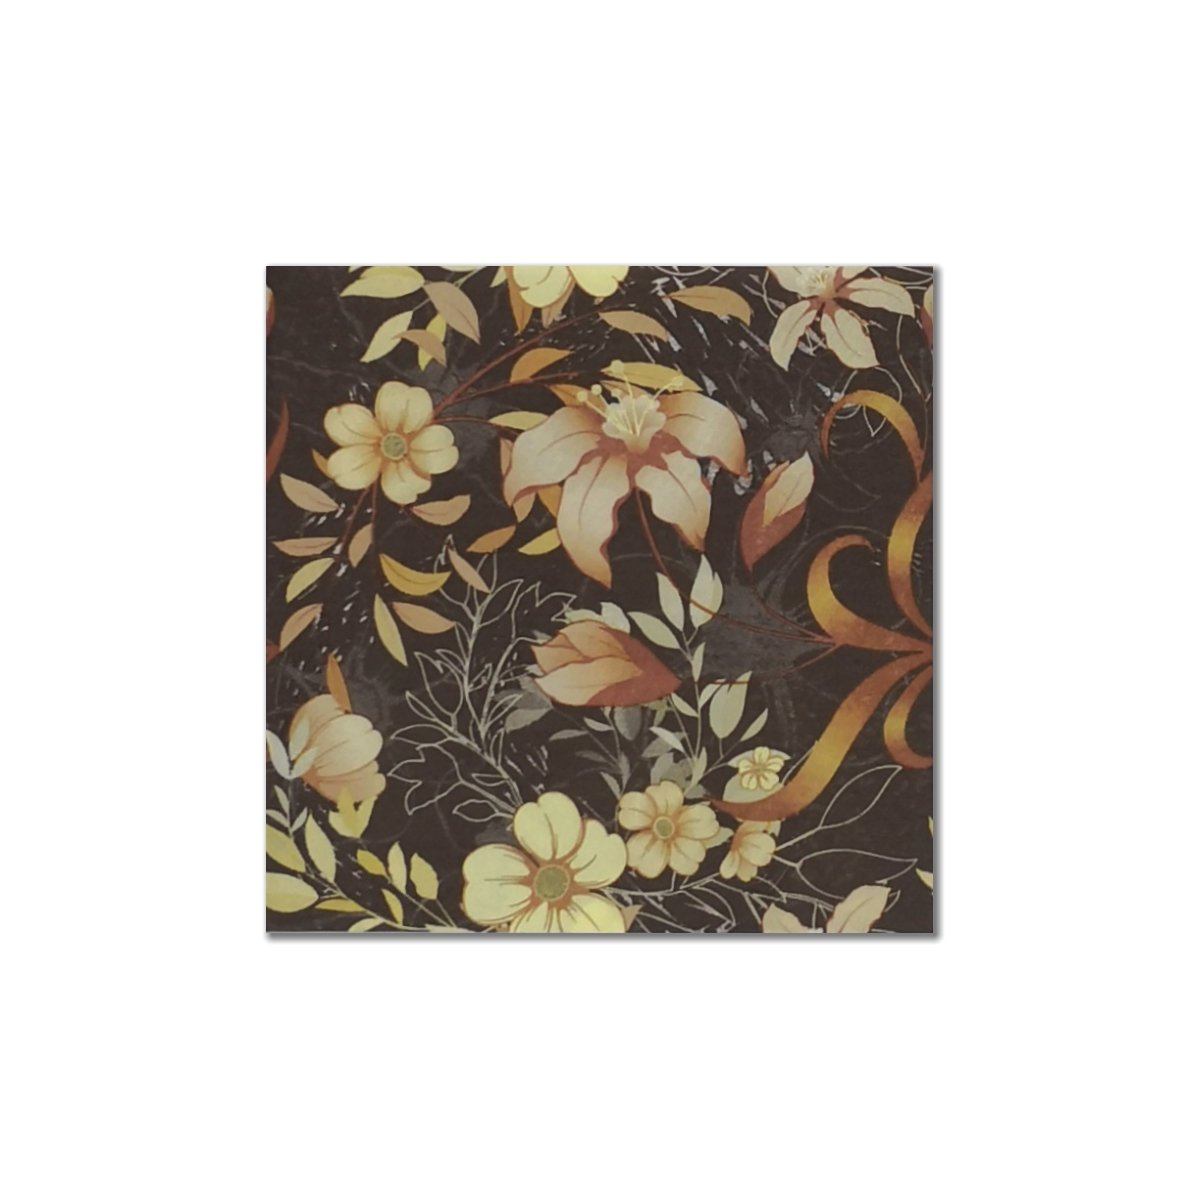 Printed Disposable Paper Napkins (3 Assorted Designs, 20-Count Each, Total: 60-Count) by Boudicca's (Image #3)